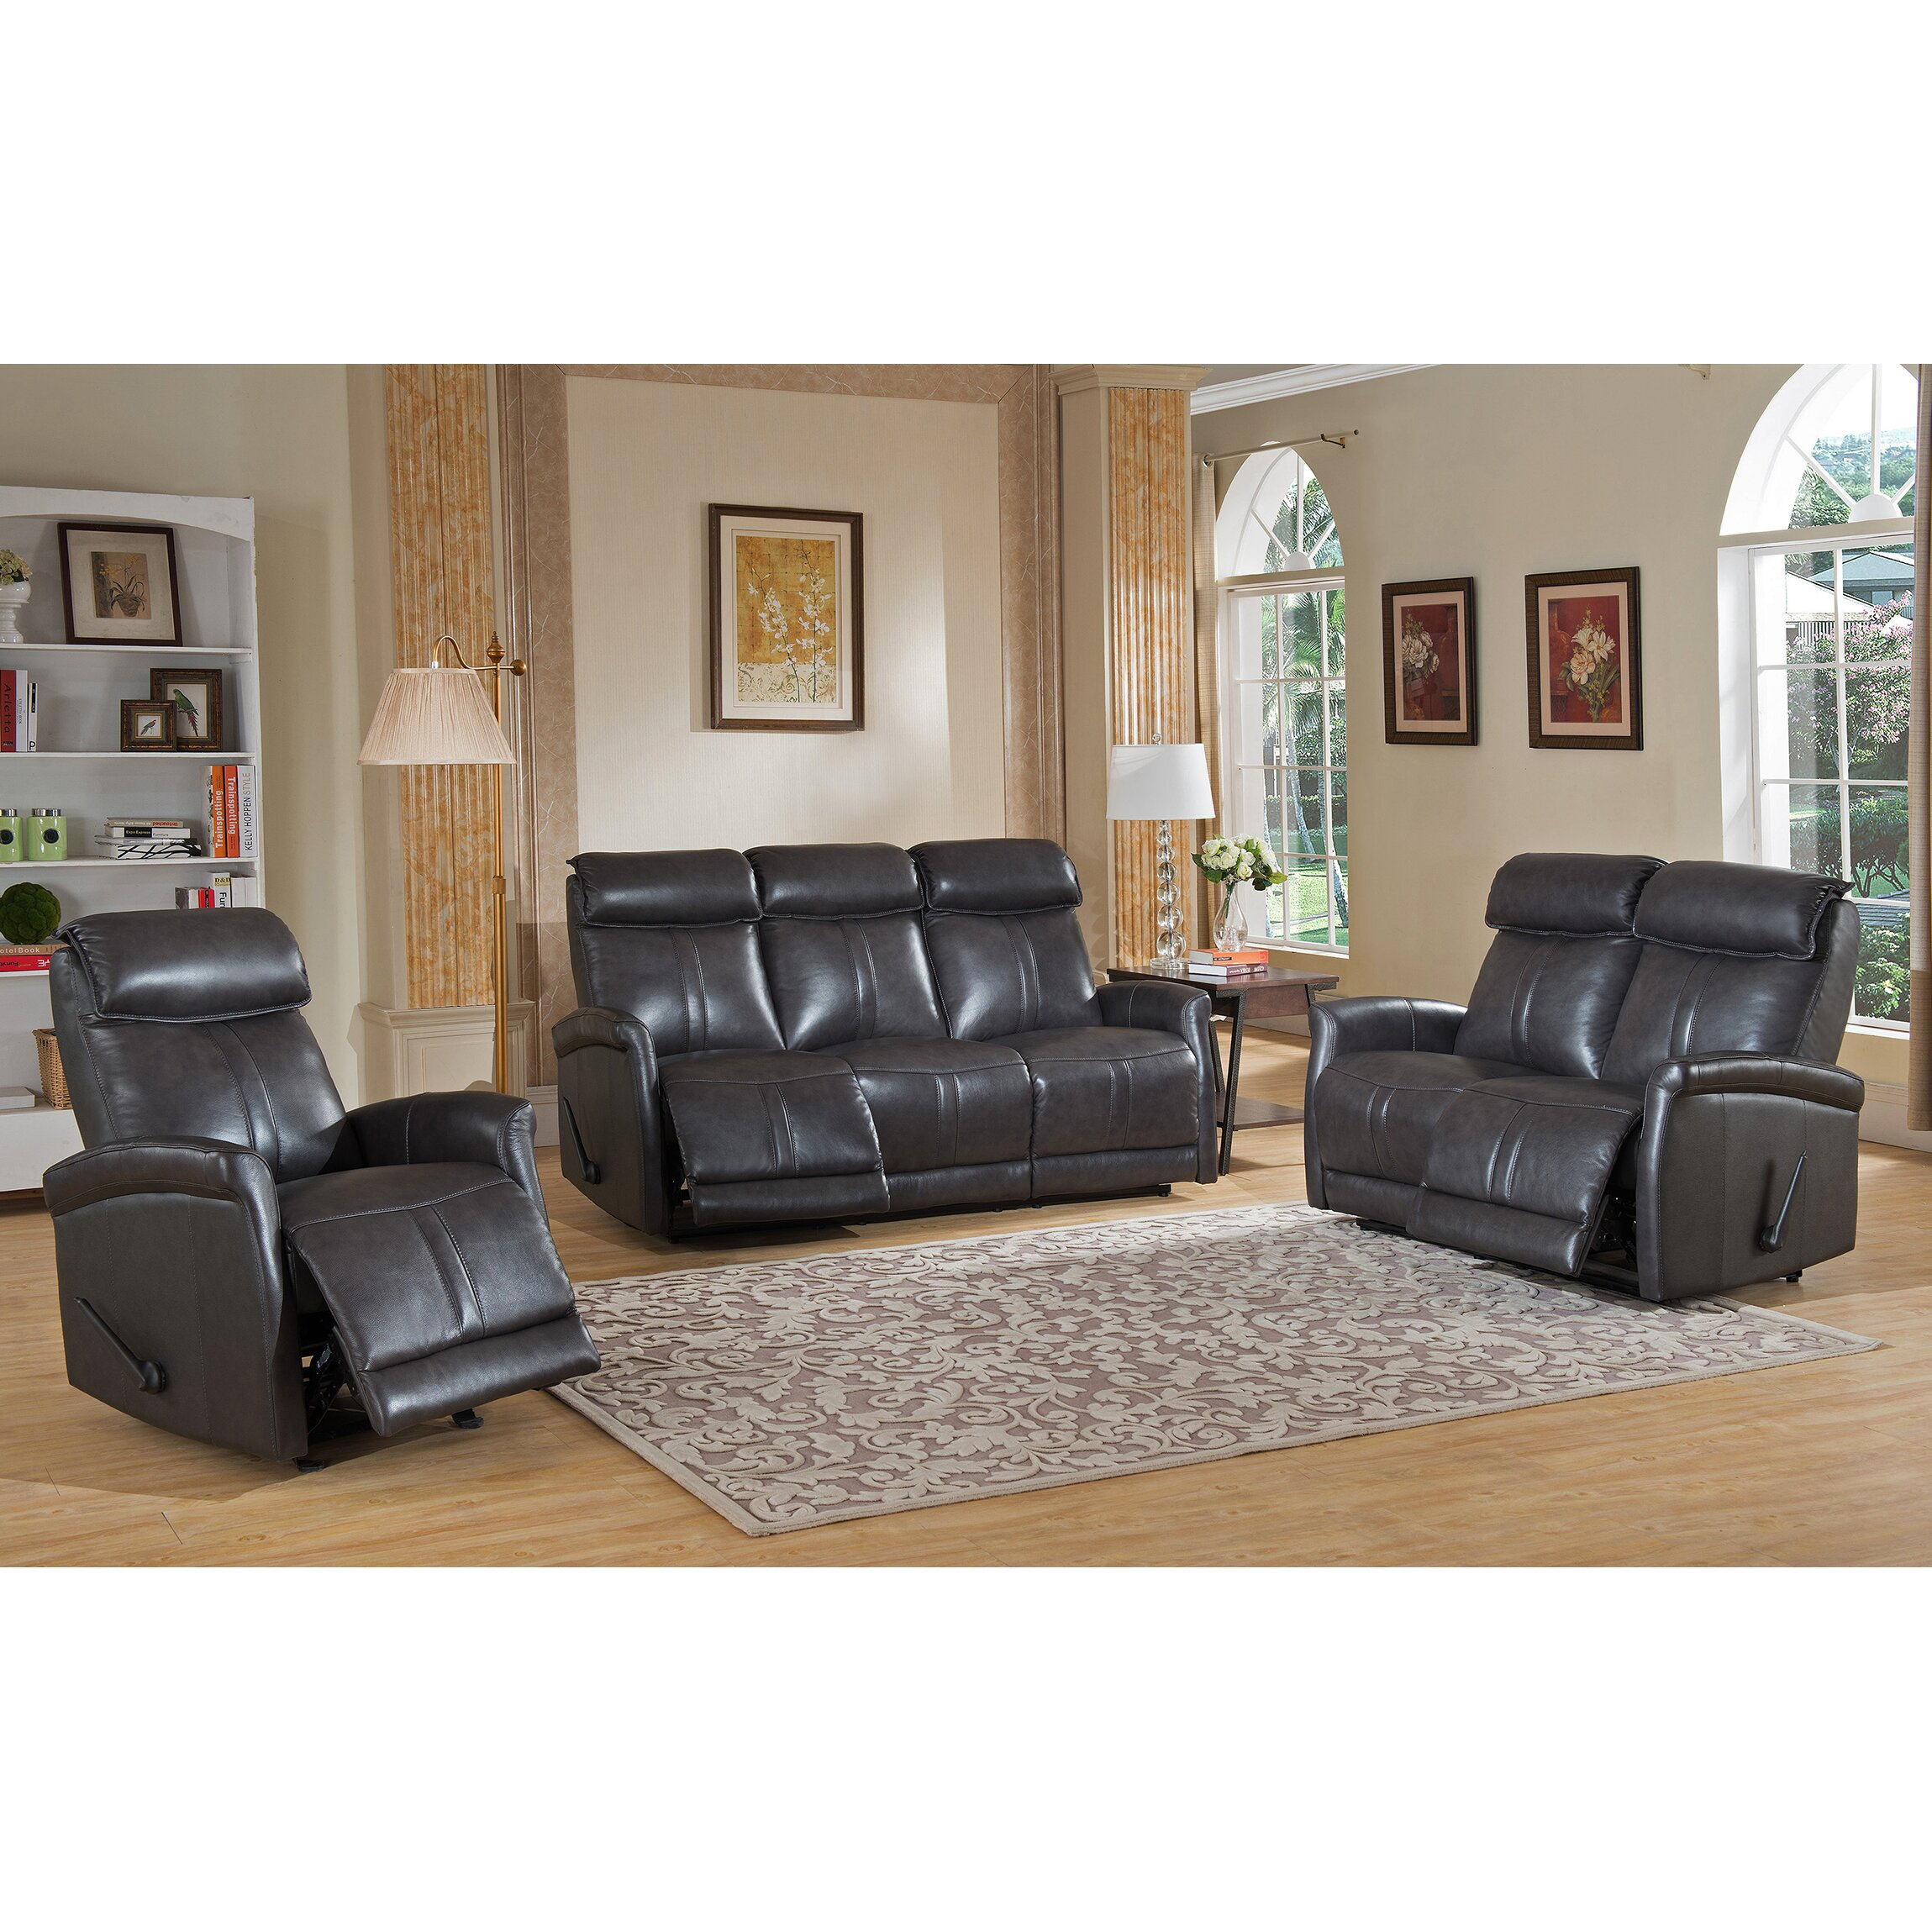 Amax mosby 3 piece leather living room set wayfair for Living room 3 piece sets